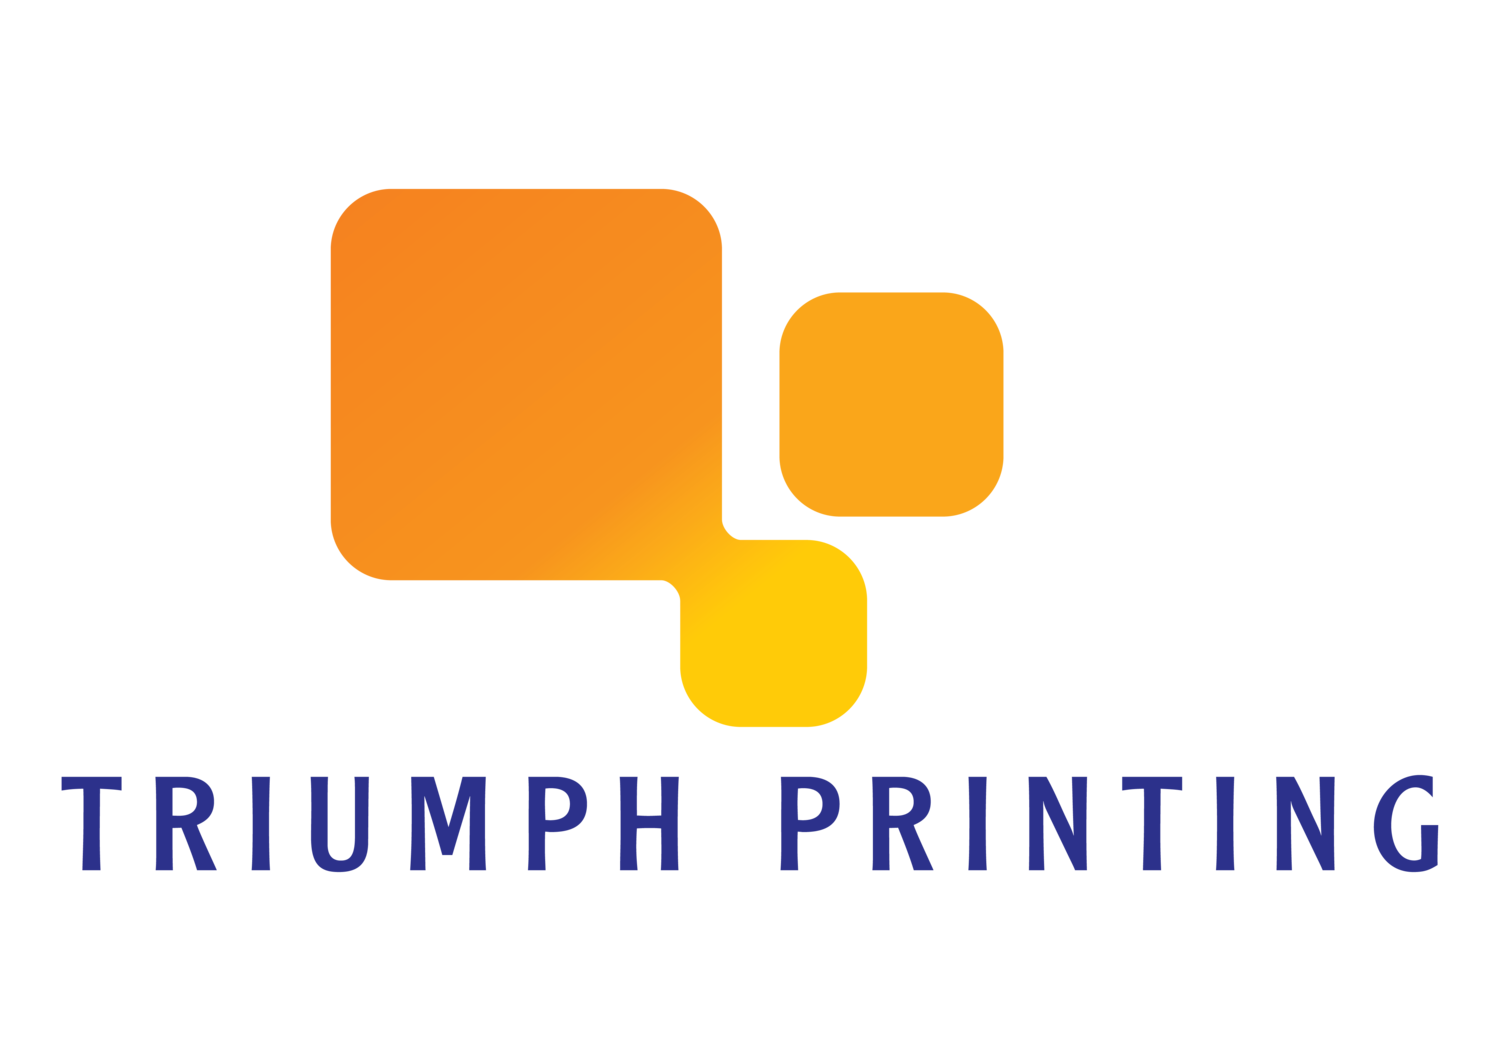 Triumph Printing & Packaging